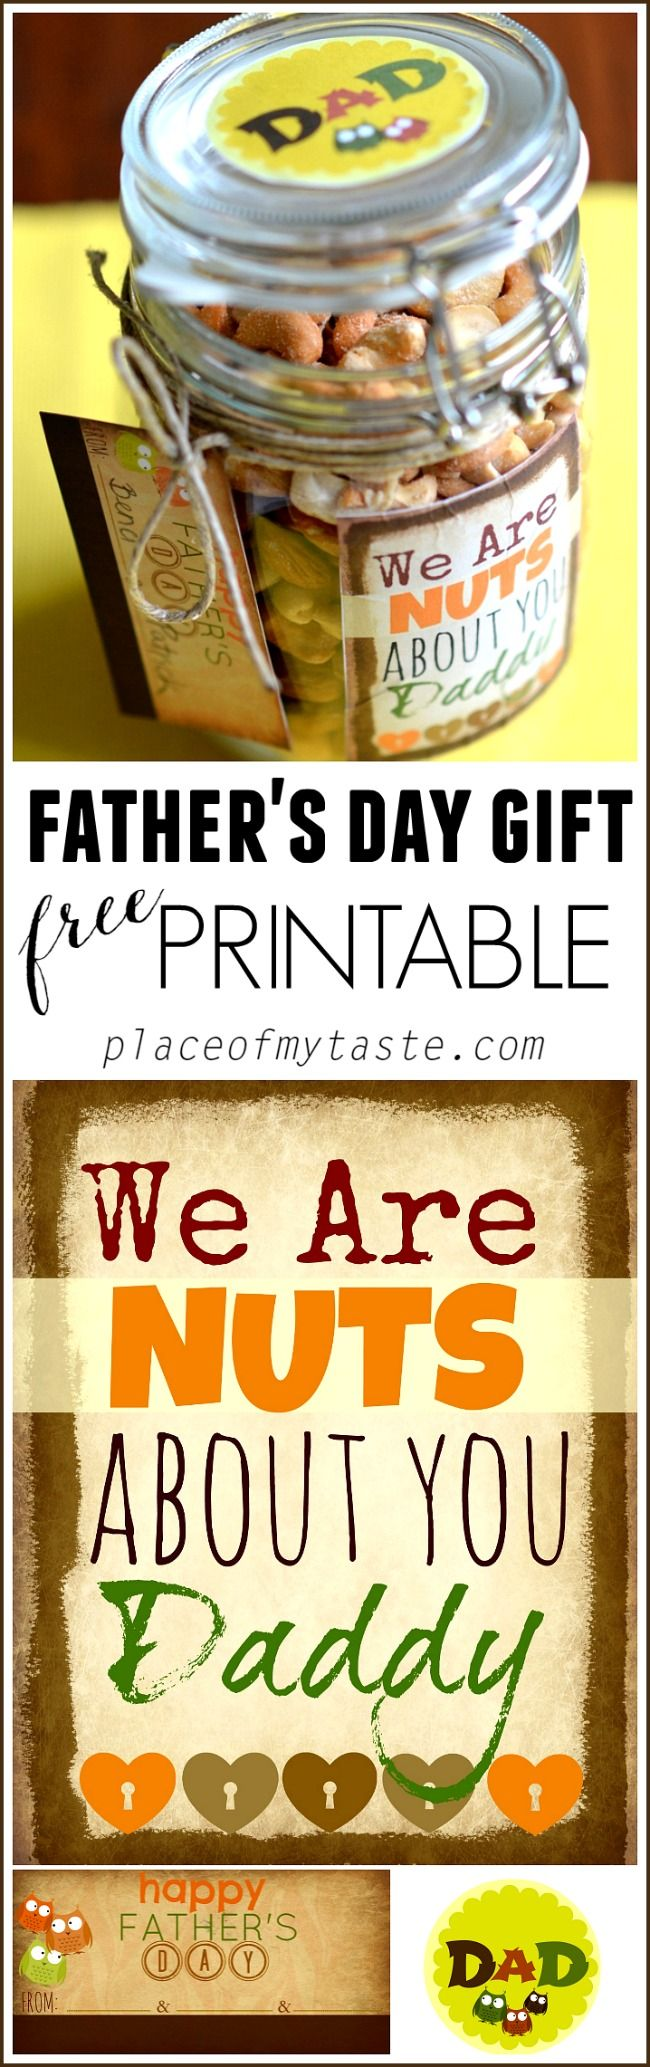 Father's day gift with FREE printables. So fun and healthy, too!